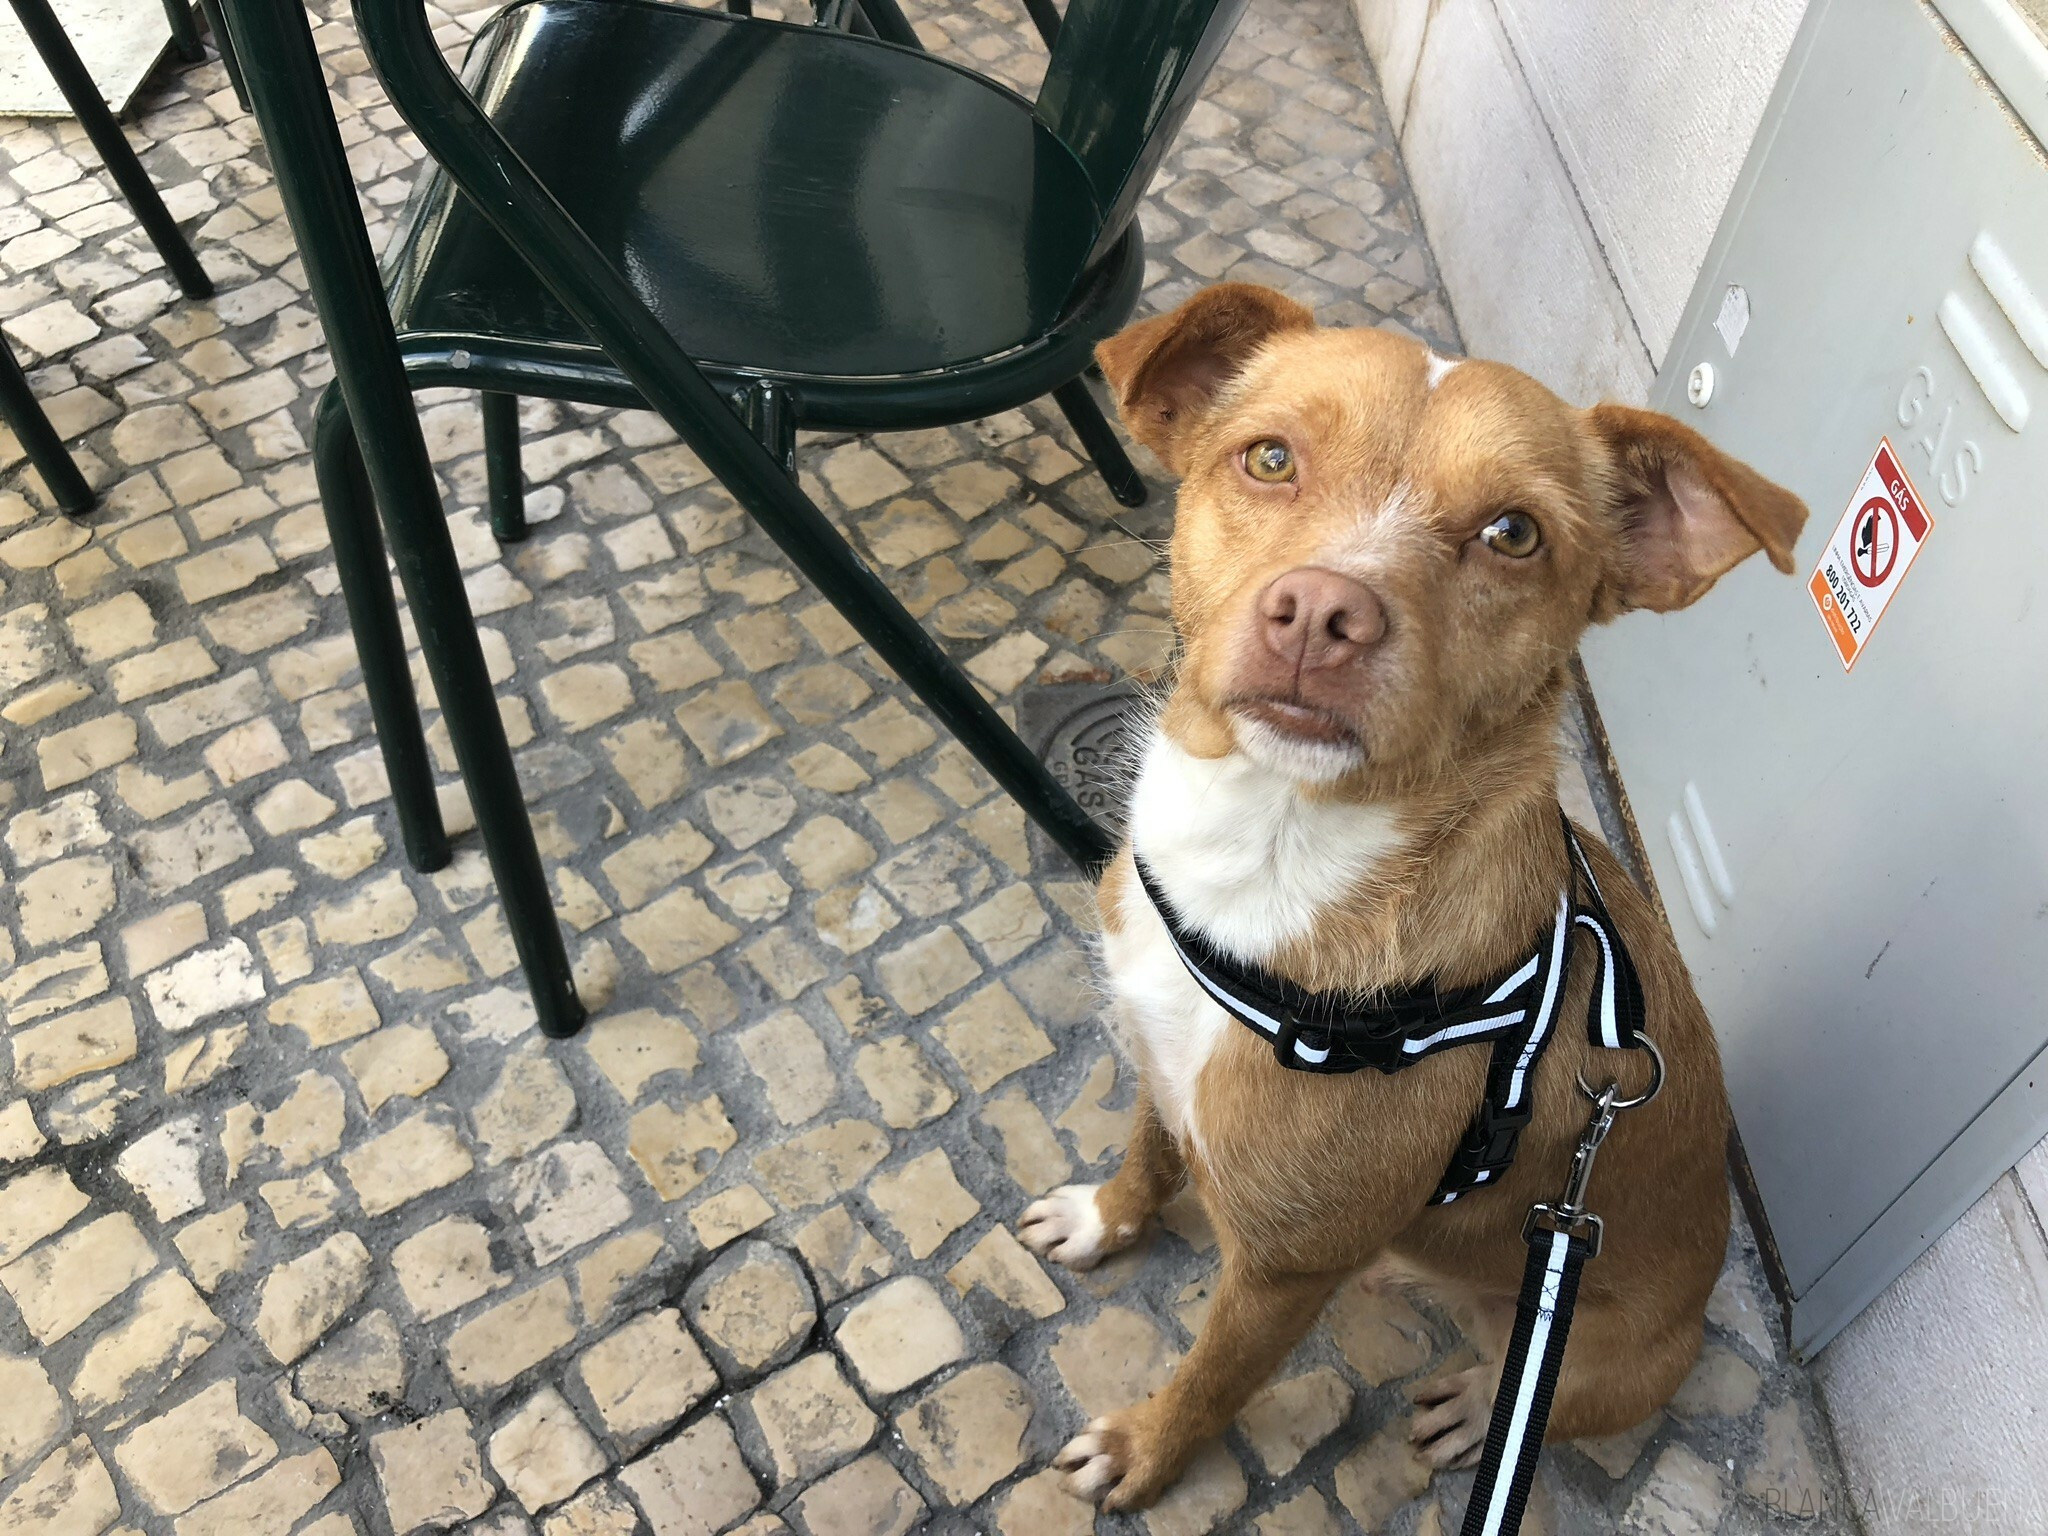 Are dogs allowed in restaurants in Portugal